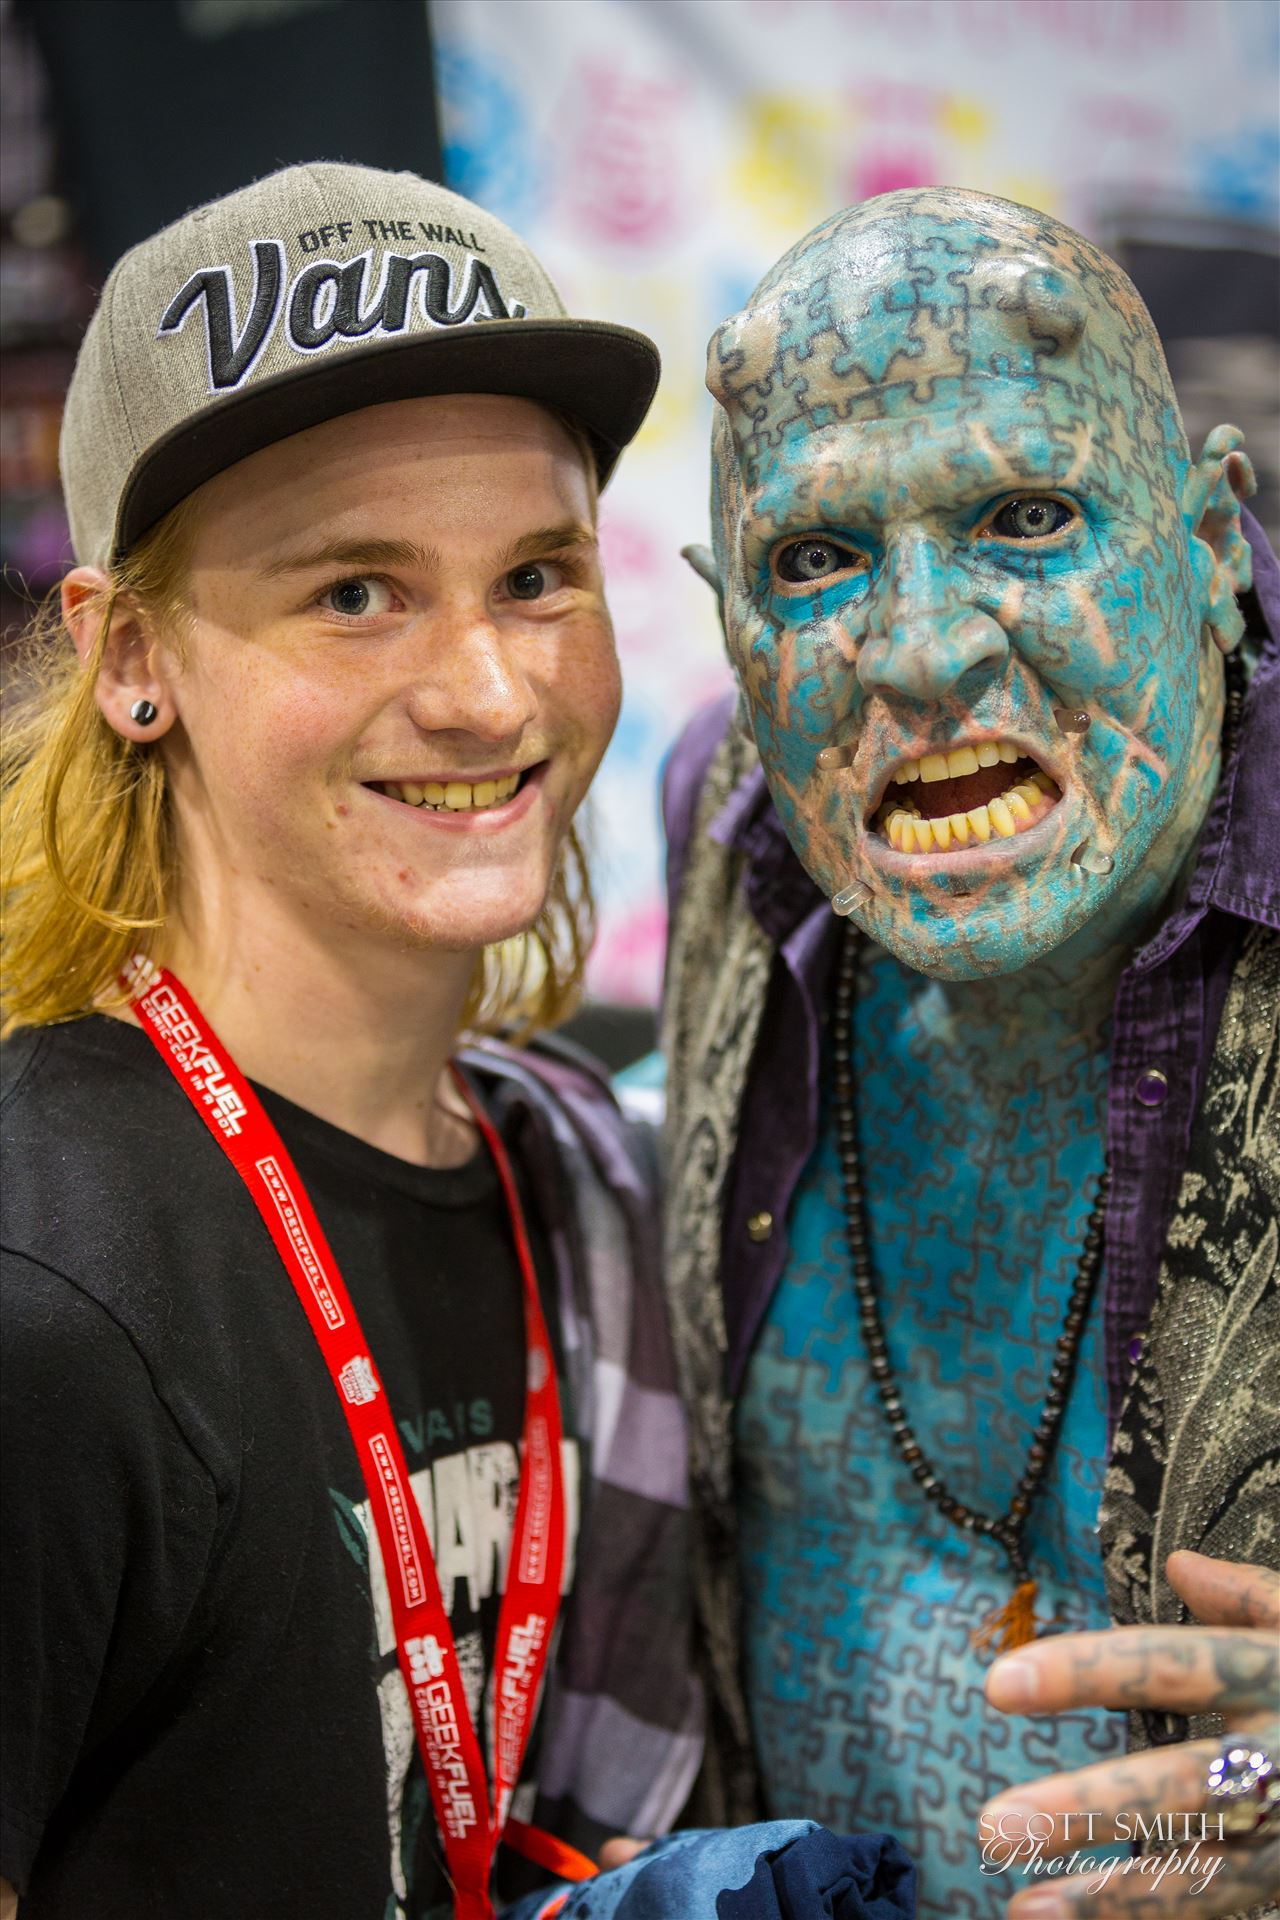 Denver Comic Con 2016 31 - Denver Comic Con 2016 at the Colorado Convention Center. The Enigma with my son. by D Scott Smith